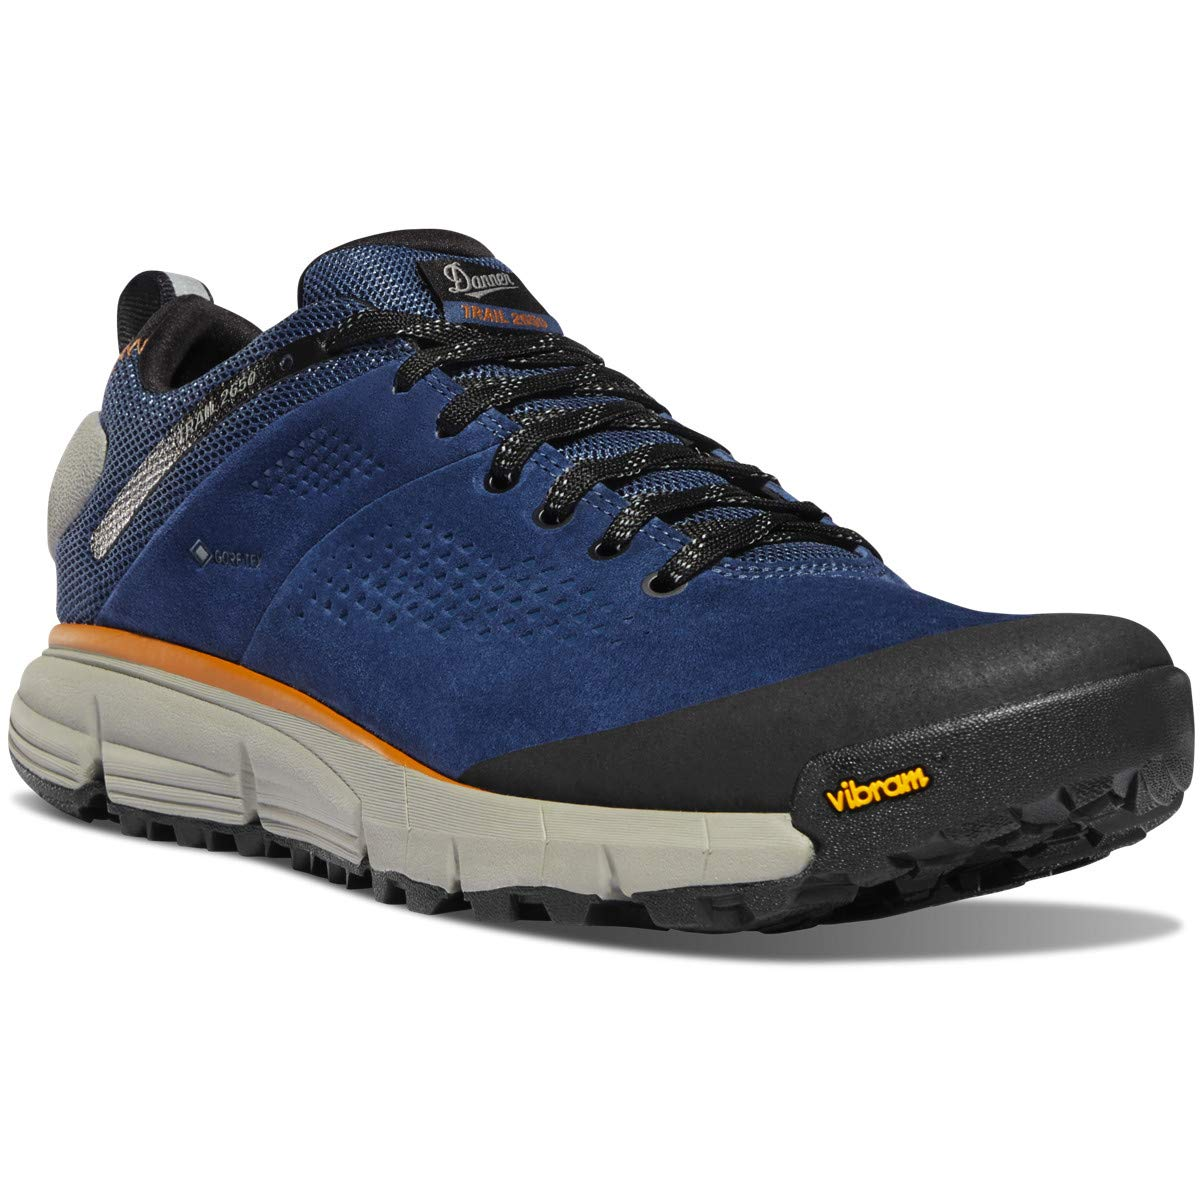 "Danner Men's Trail 2650 3"" Gore-Tex Hiking Shoe"